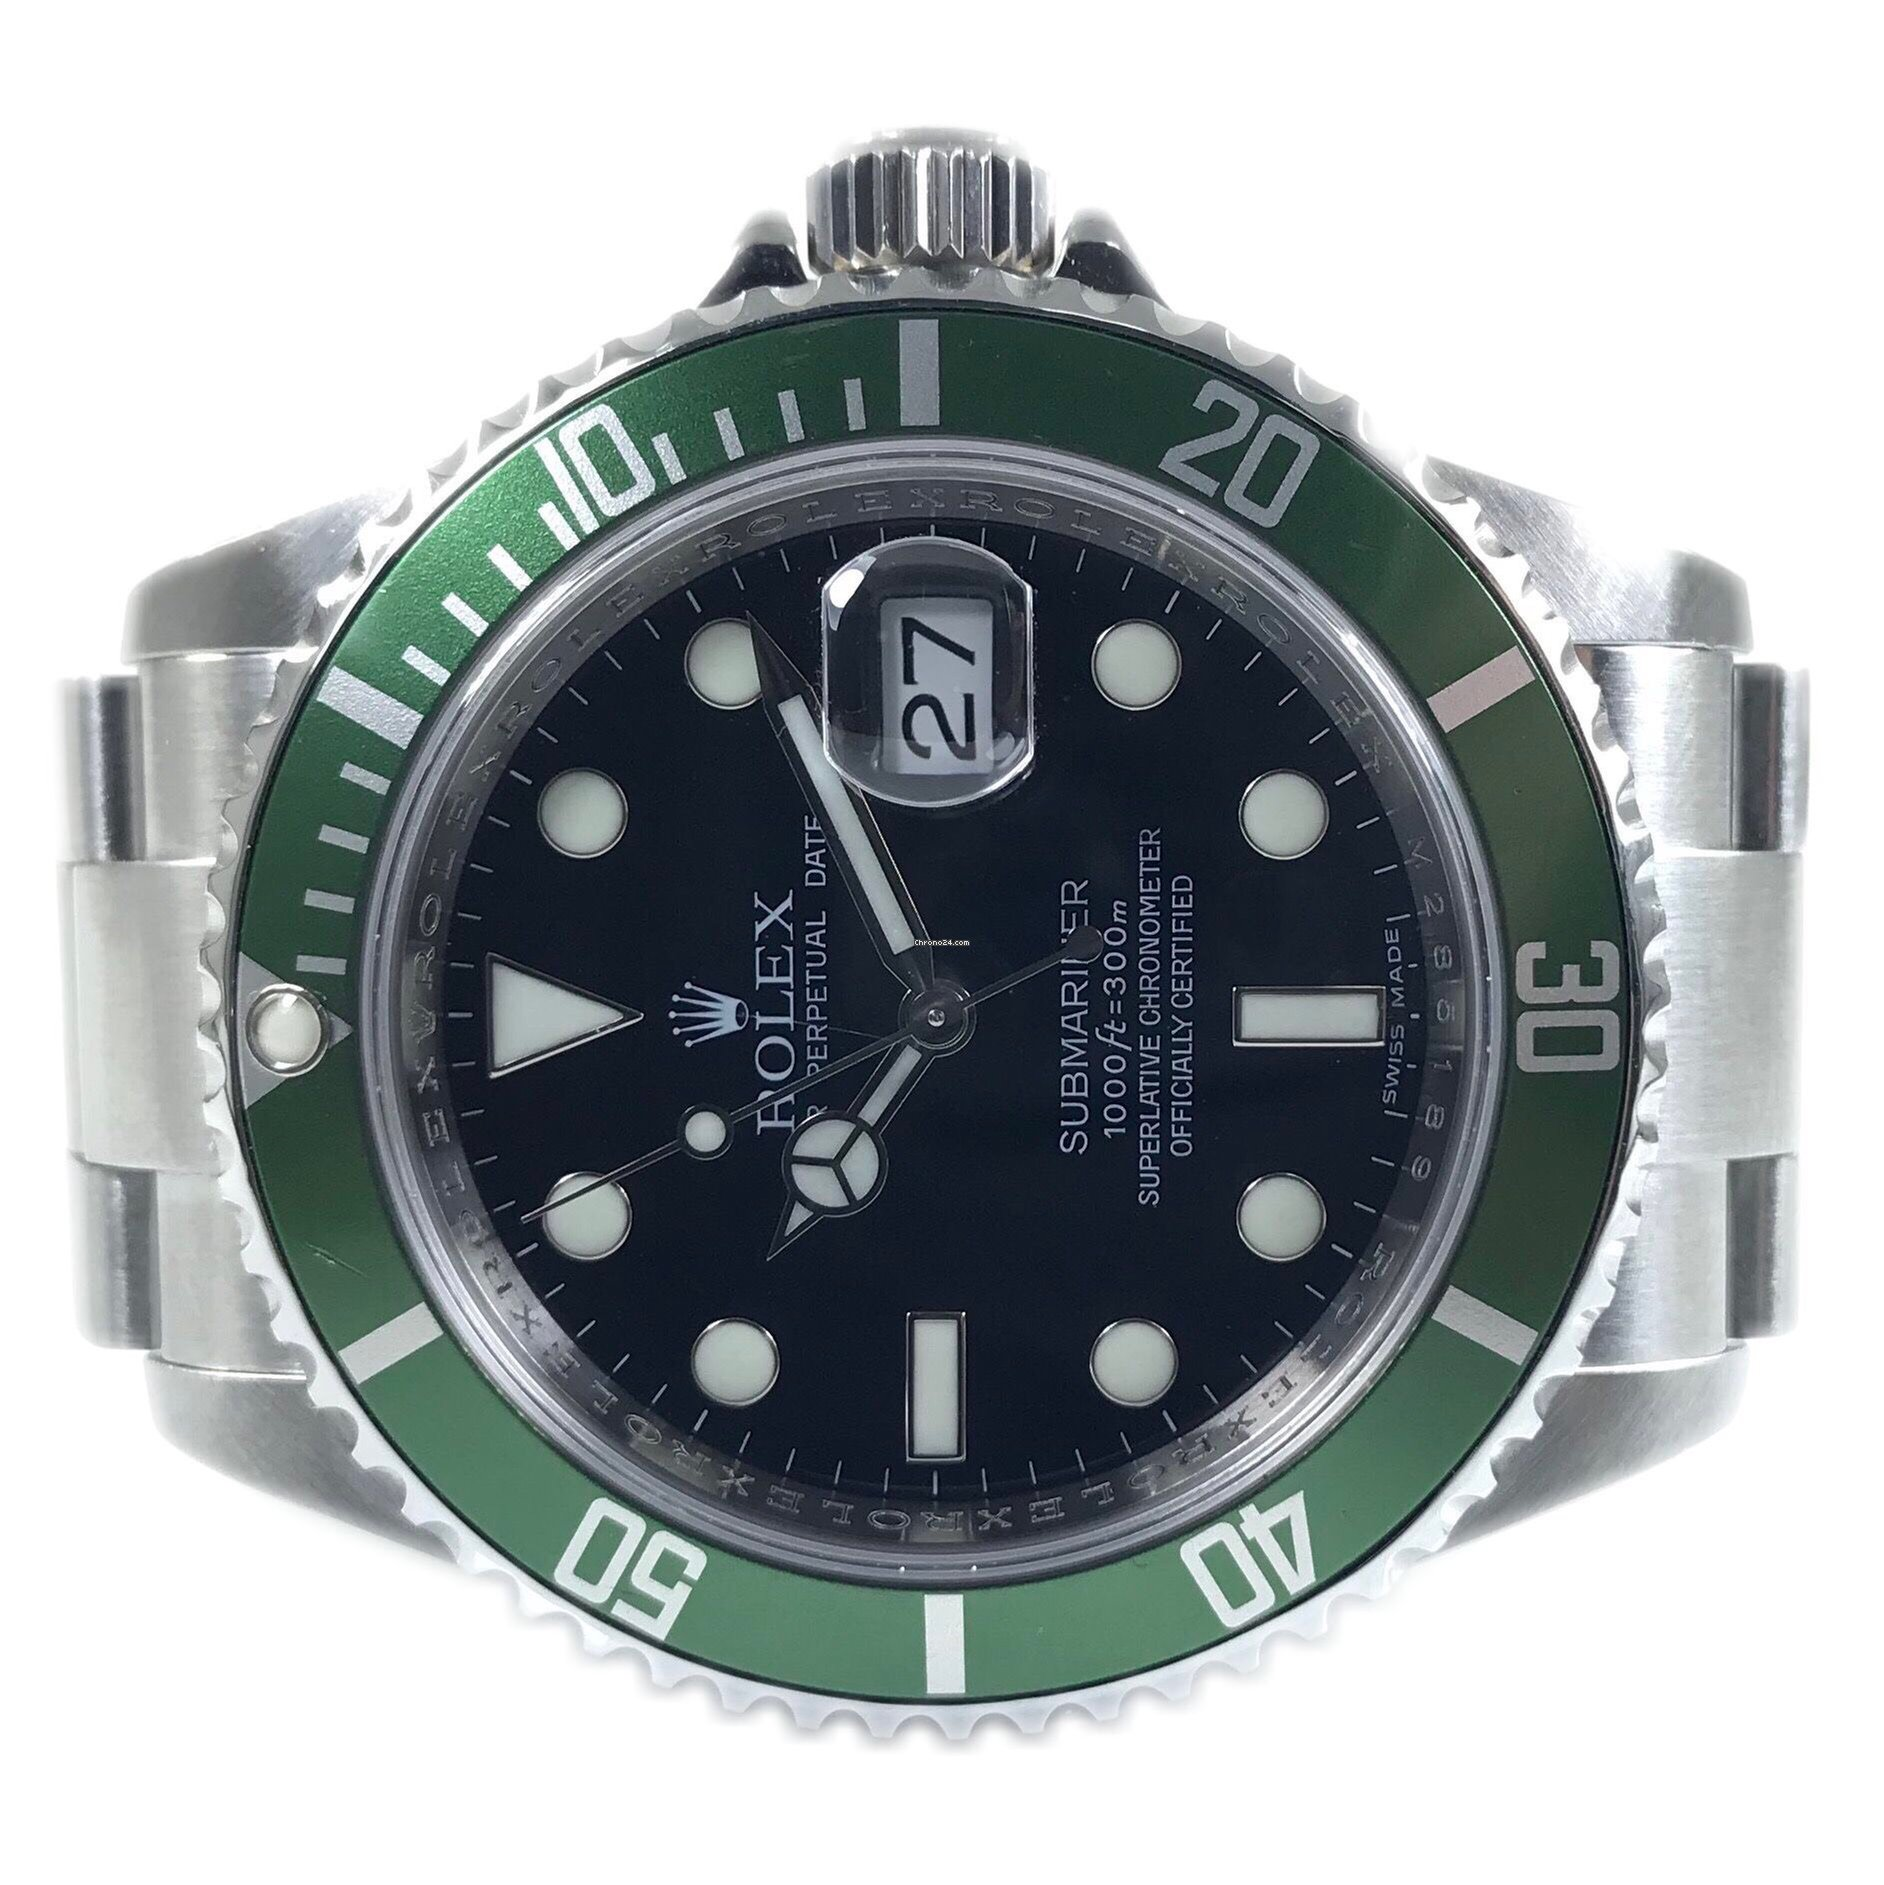 Rolex Submariner Date for AU$ 22,395 for sale from a Trusted Seller